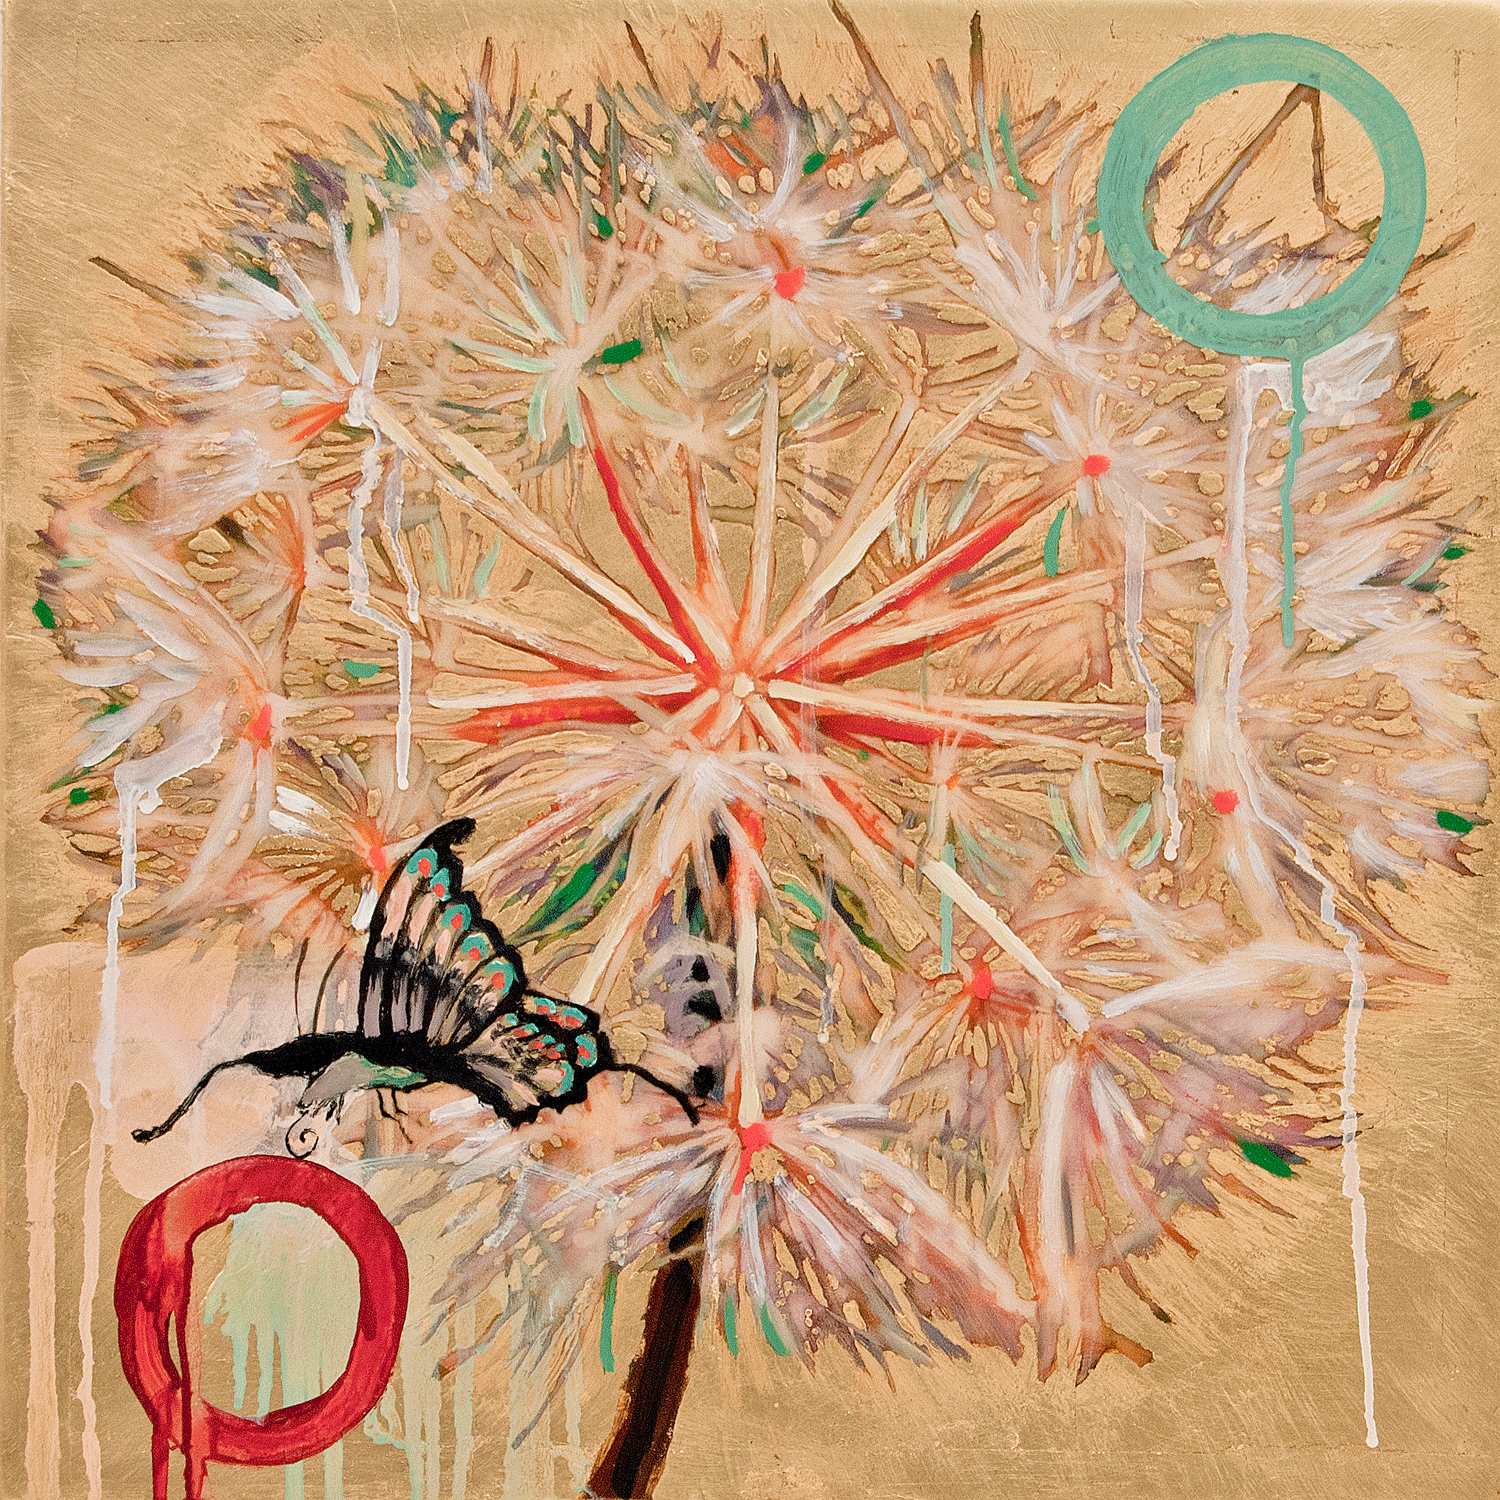 Dandelion with Butterfly, 2017, Mixed Media, 20.5 x 20.5 Inches